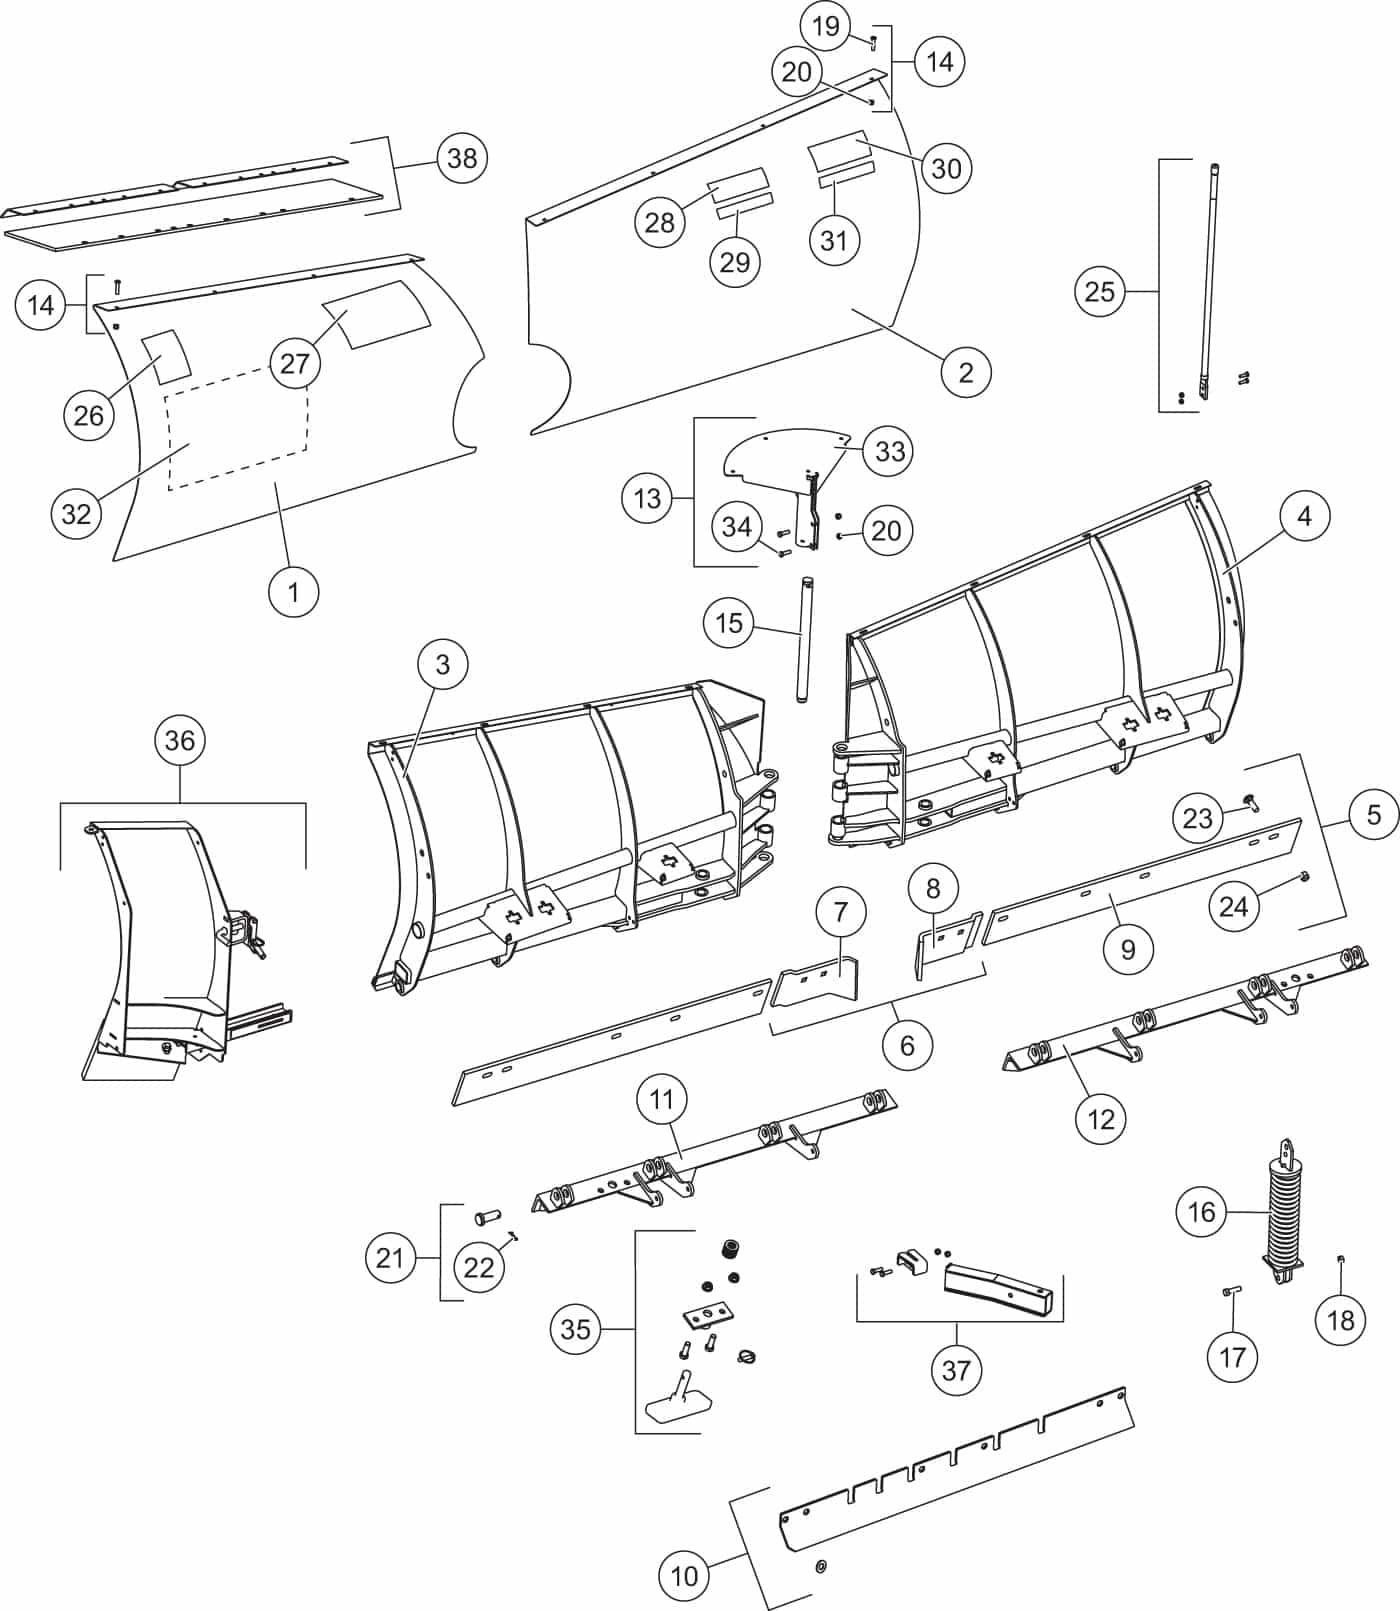 UltraMount MVP 3 Blade Diagram | Western Snow Plow Parts on